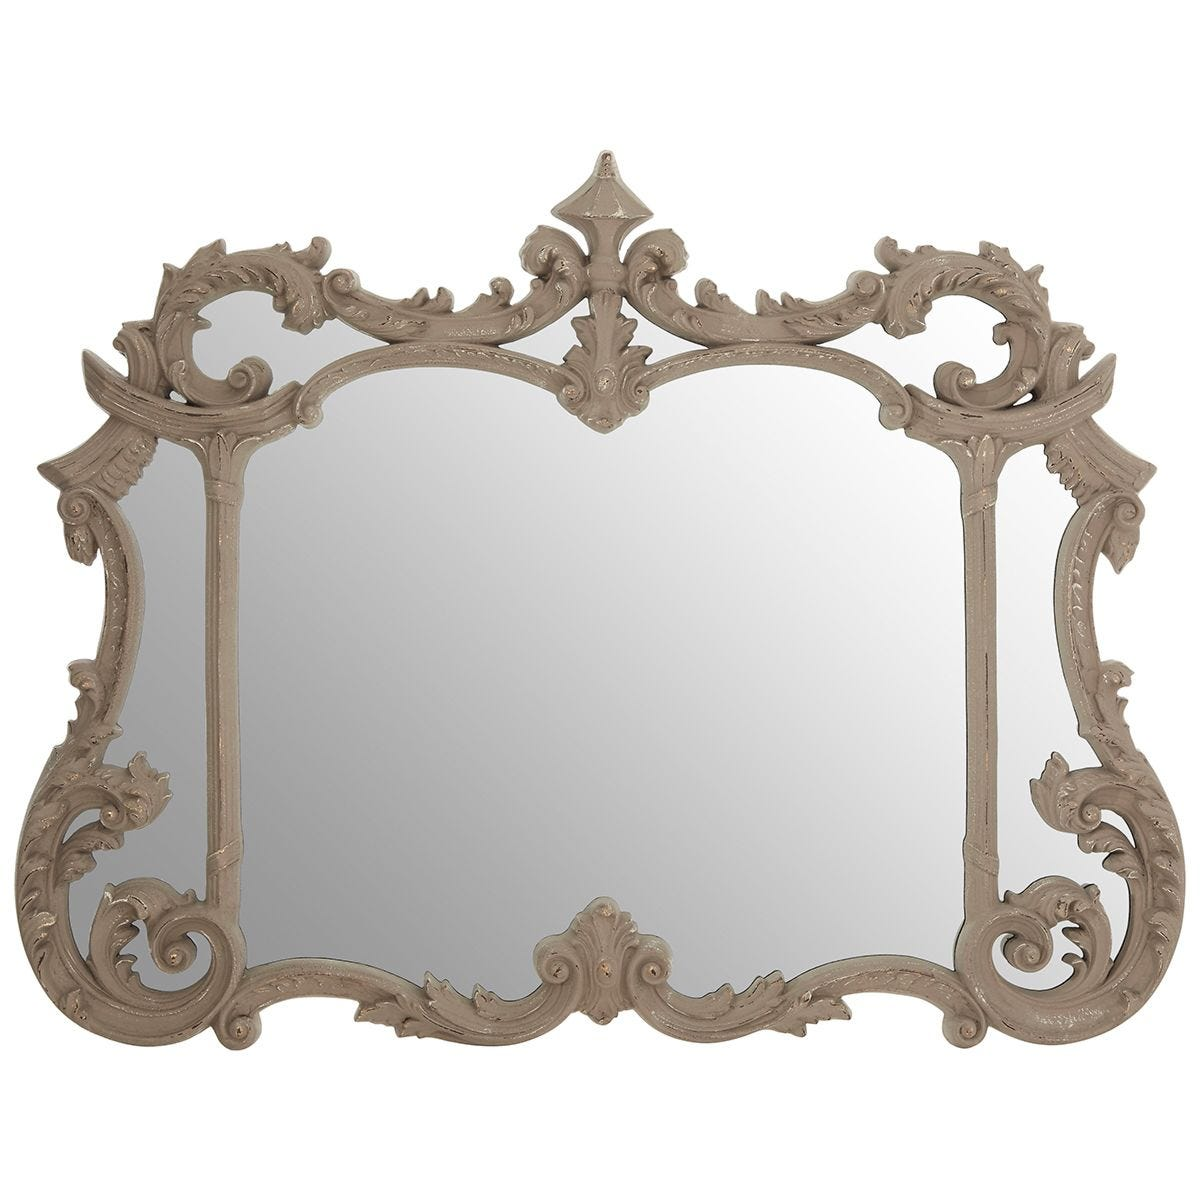 Premier Housewares Haniel Wall Mirror - Antique Grey Finish